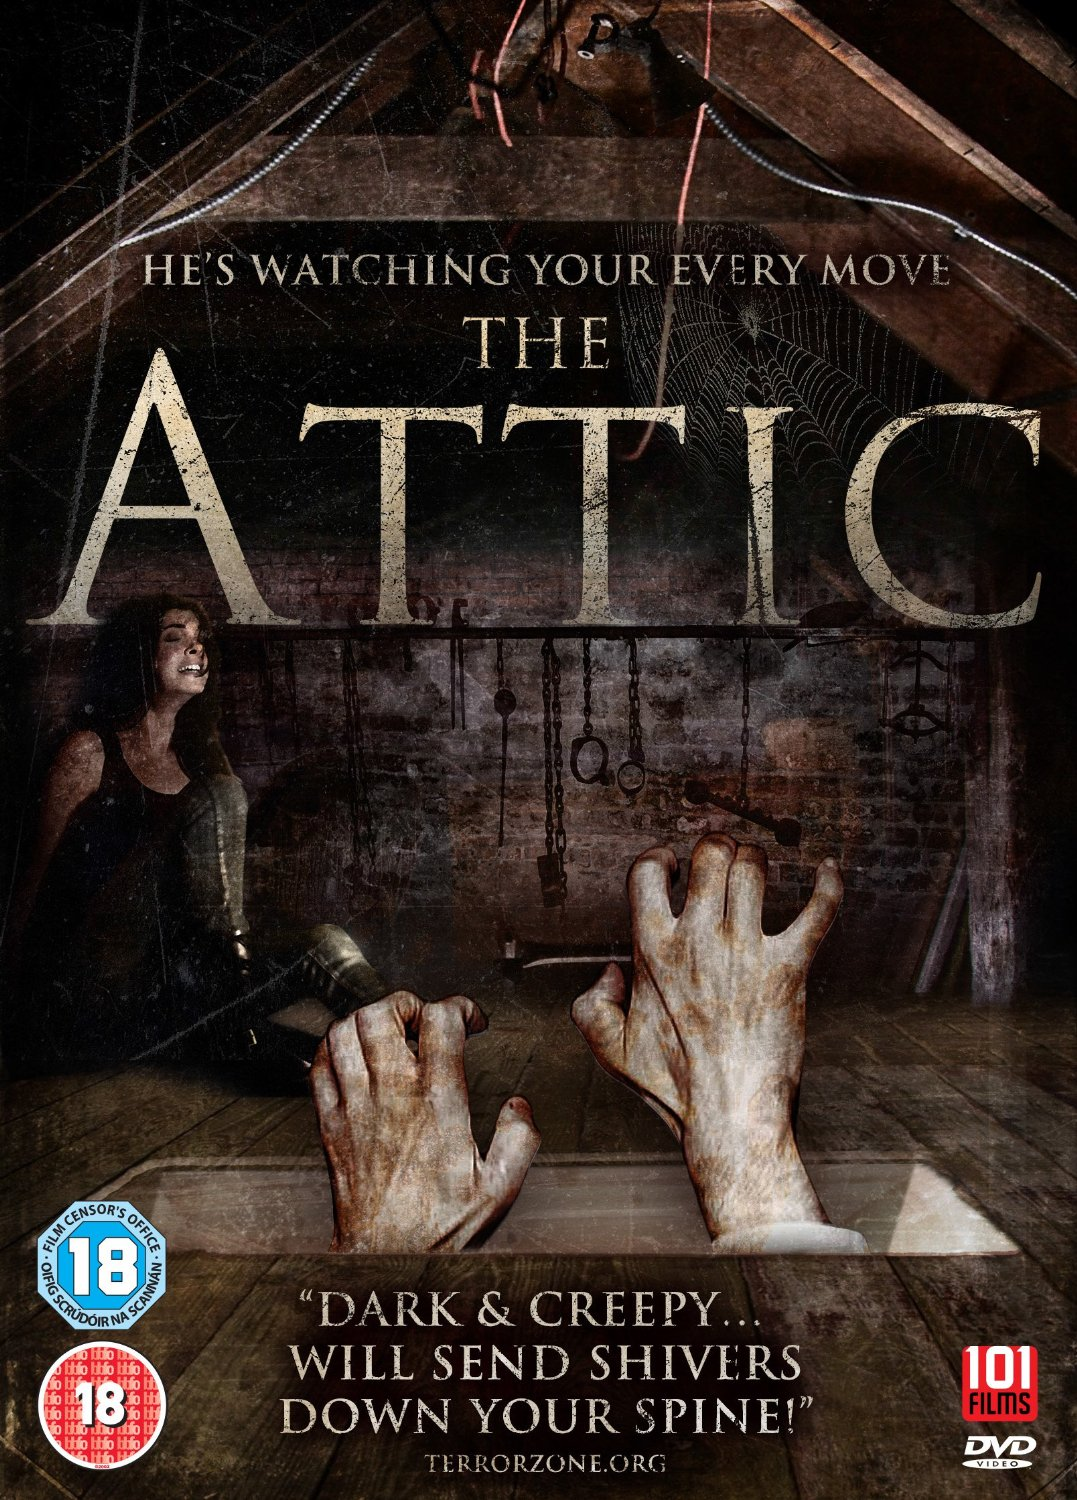 The Attic 2013 review – That Was A Bit Mental